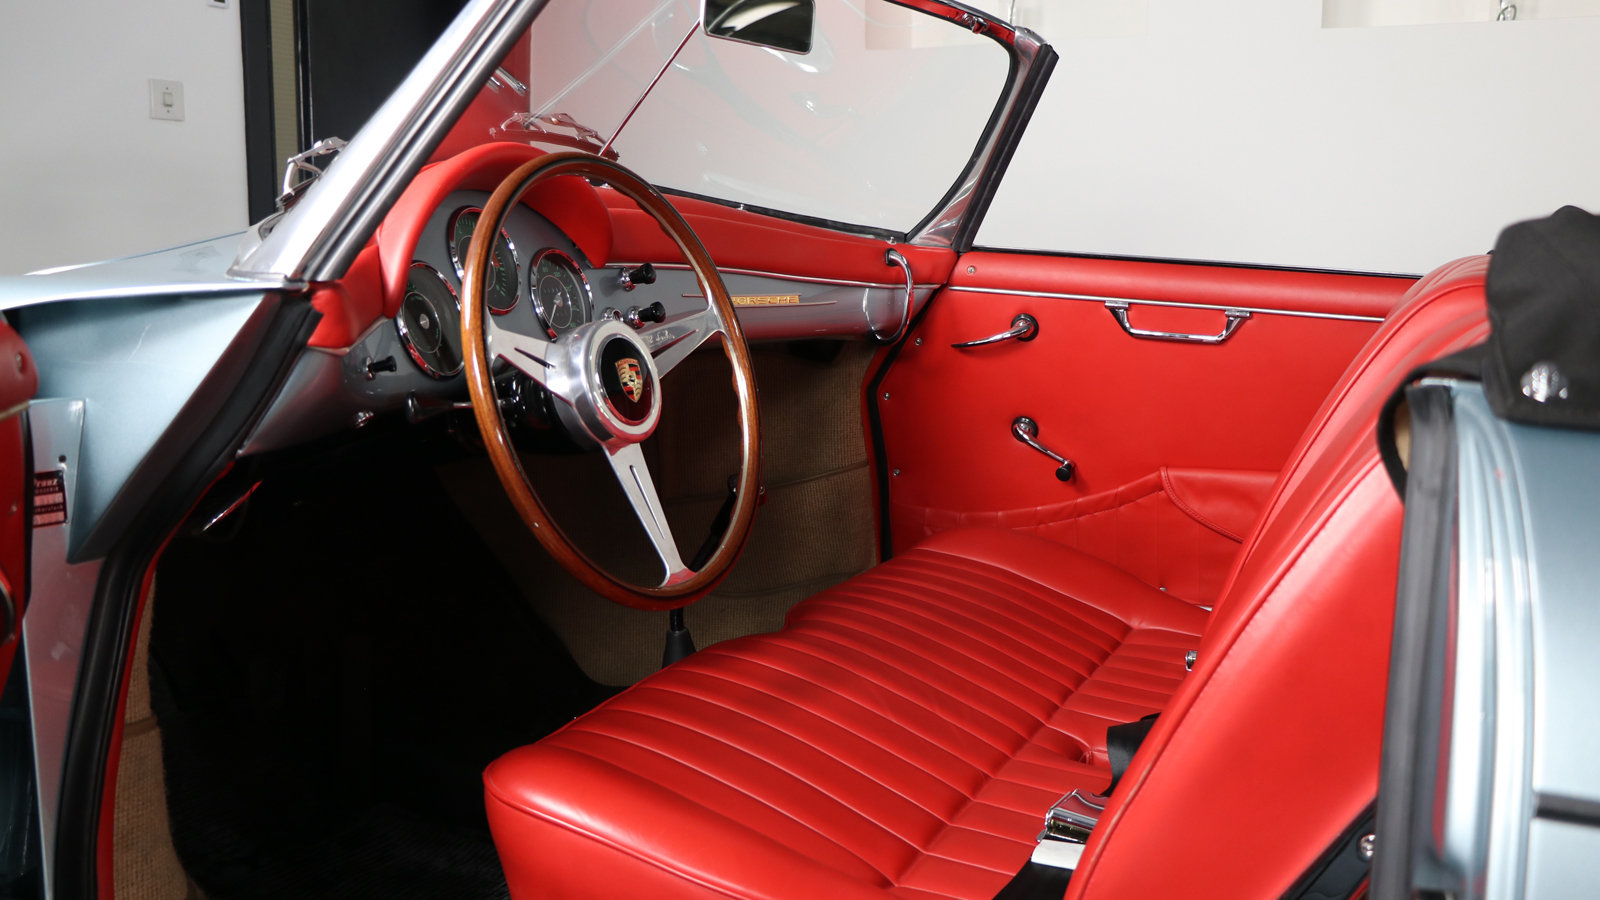 1961 Porsche 356 B Roadster Rod Emory Restoration  For Sale (picture 3 of 6)